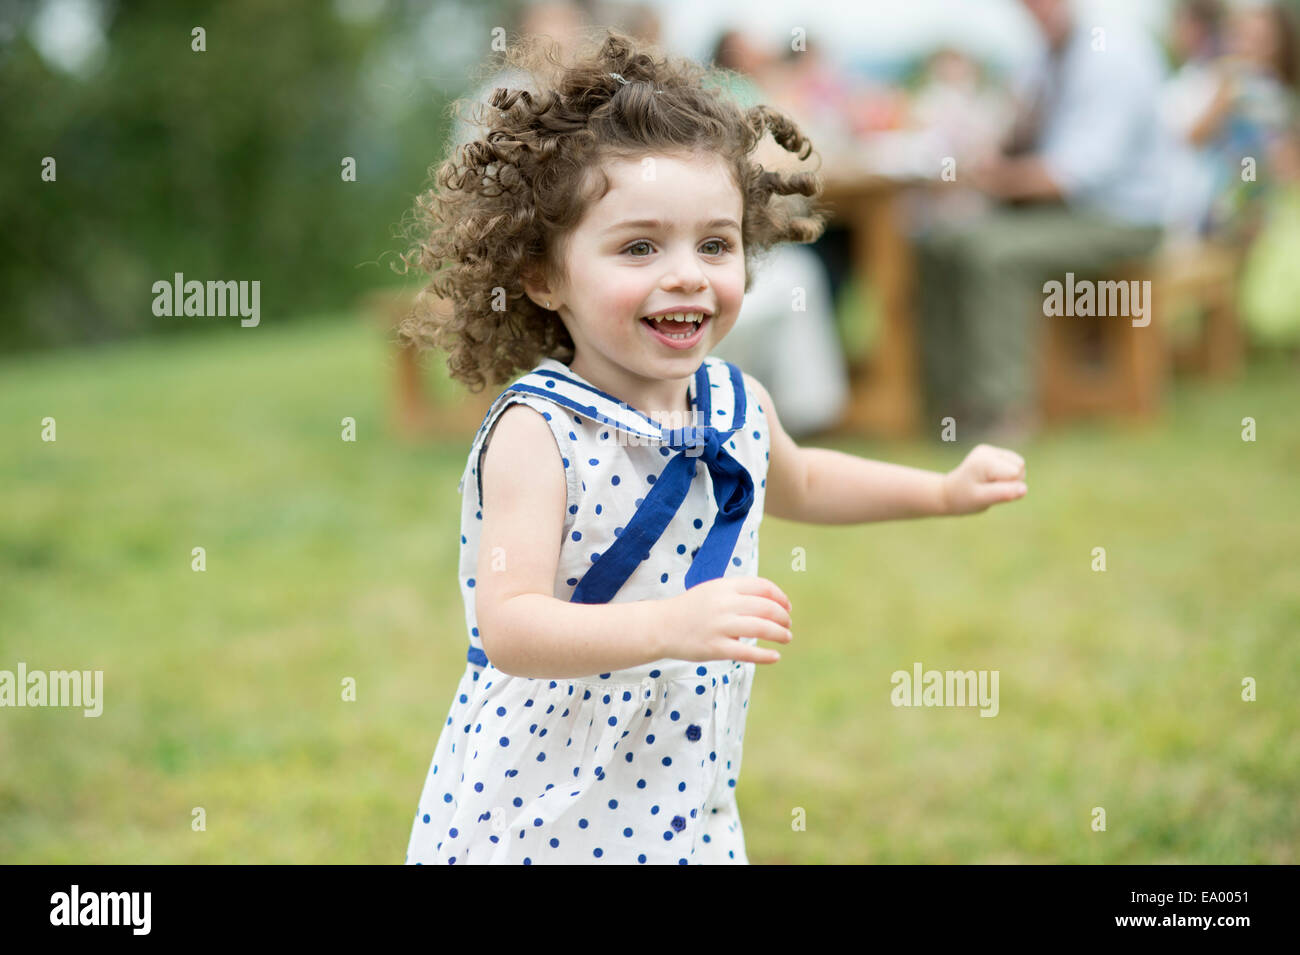 Young girl running and playing at family gathering - Stock Image